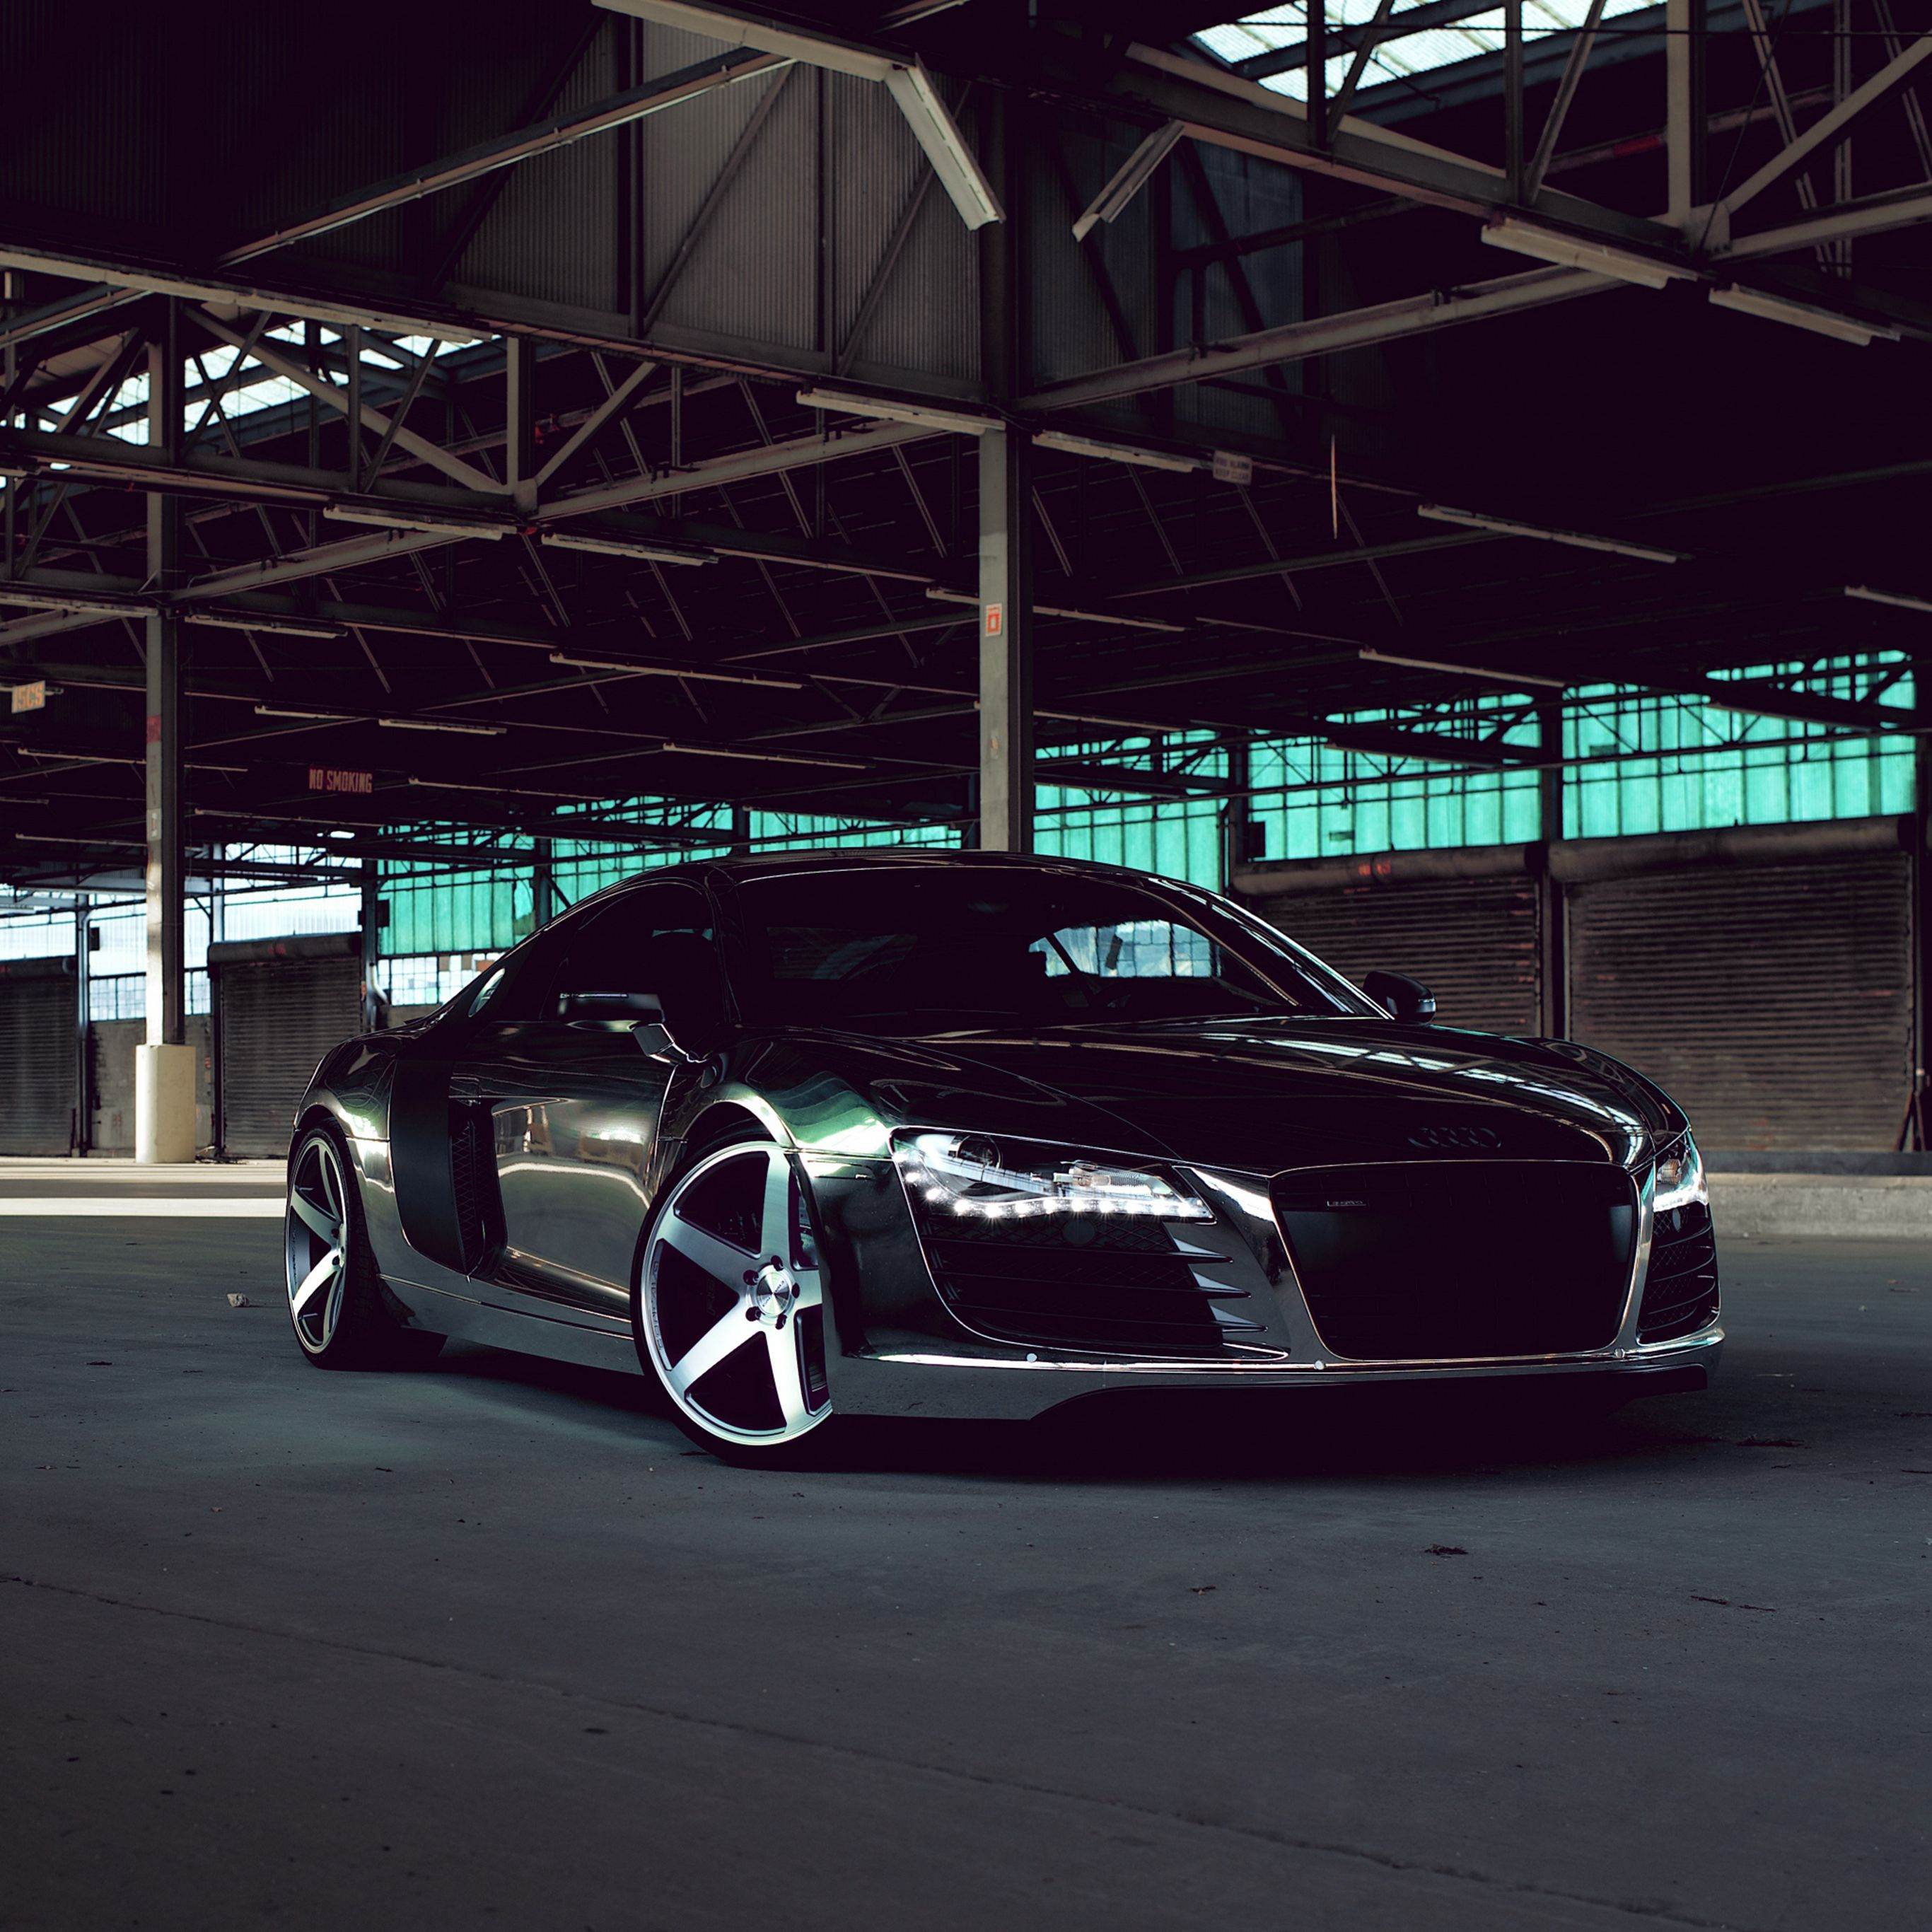 1440x2560 Suhd Wallpaper Fall Audi R8 Chrome Cw 5 Matte Black Side View Ipad Pro